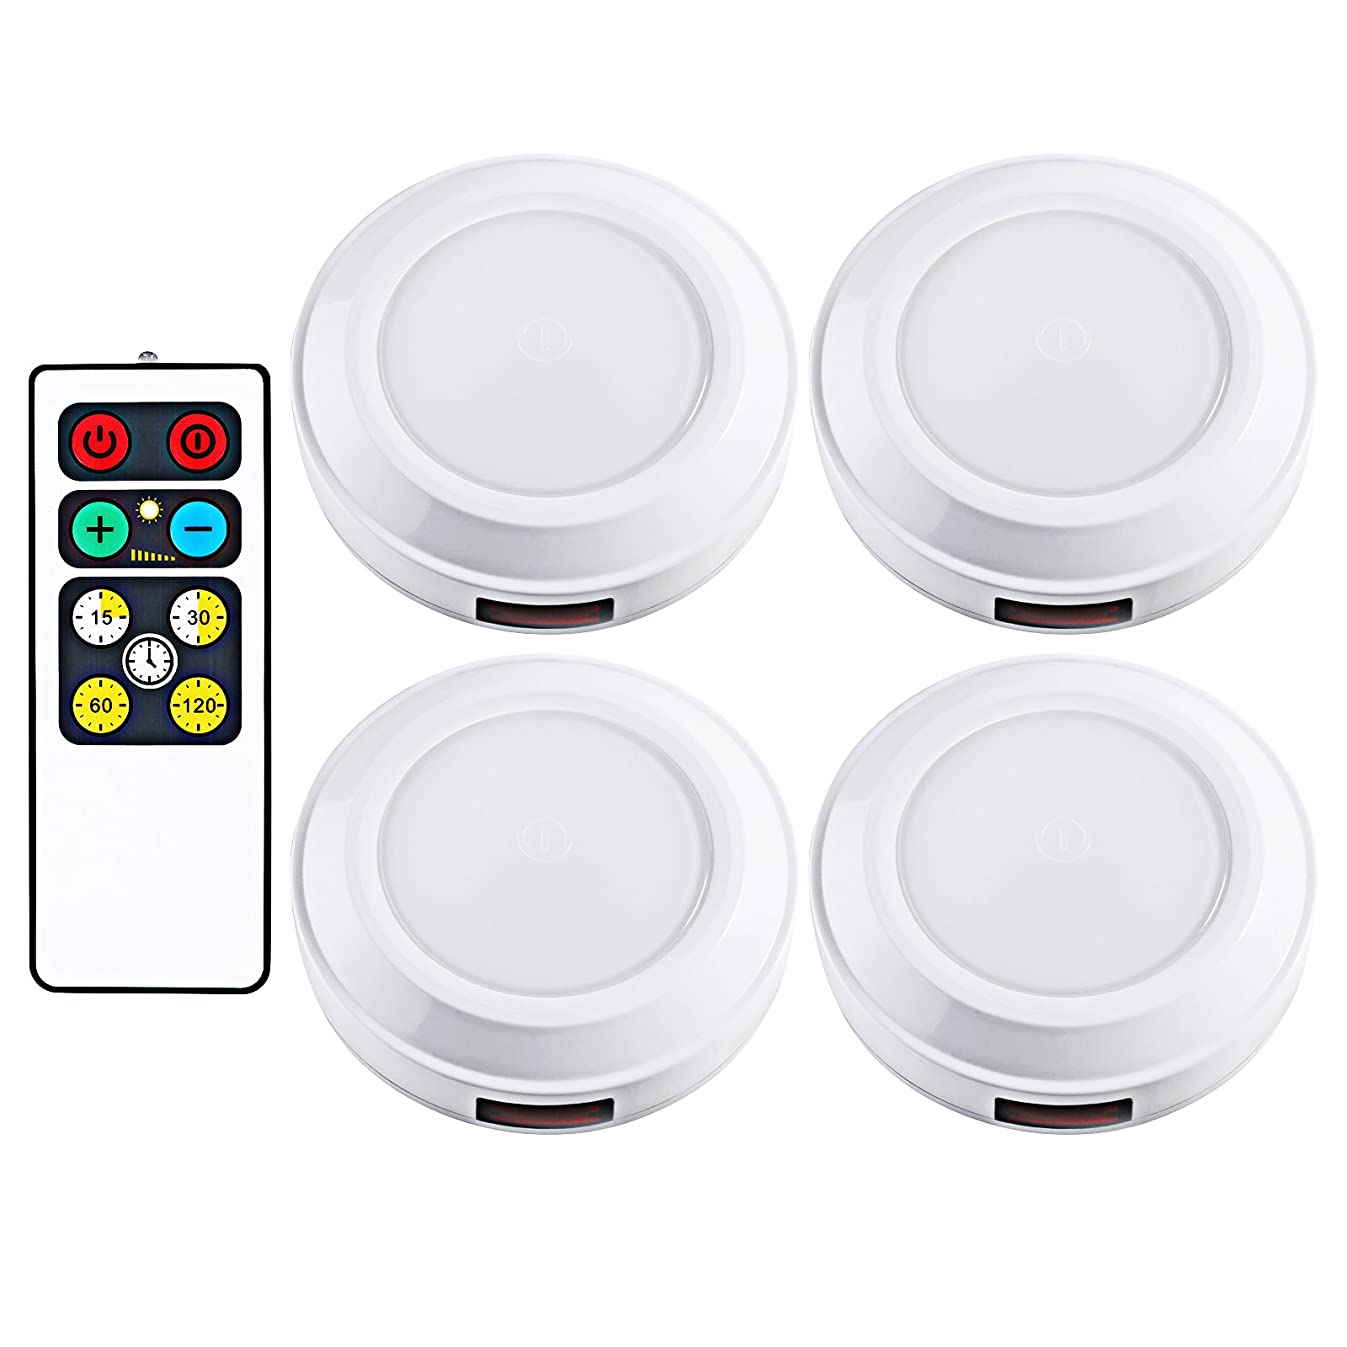 DEWENWILS LED Wireless Puck Light Remote Control (Timer+ Dimmer), Battery Operated Nightlight, Stick-on Anywhere, for Under Cabinet, Counter, Pantry, Warm White, 4 Pack, Round,